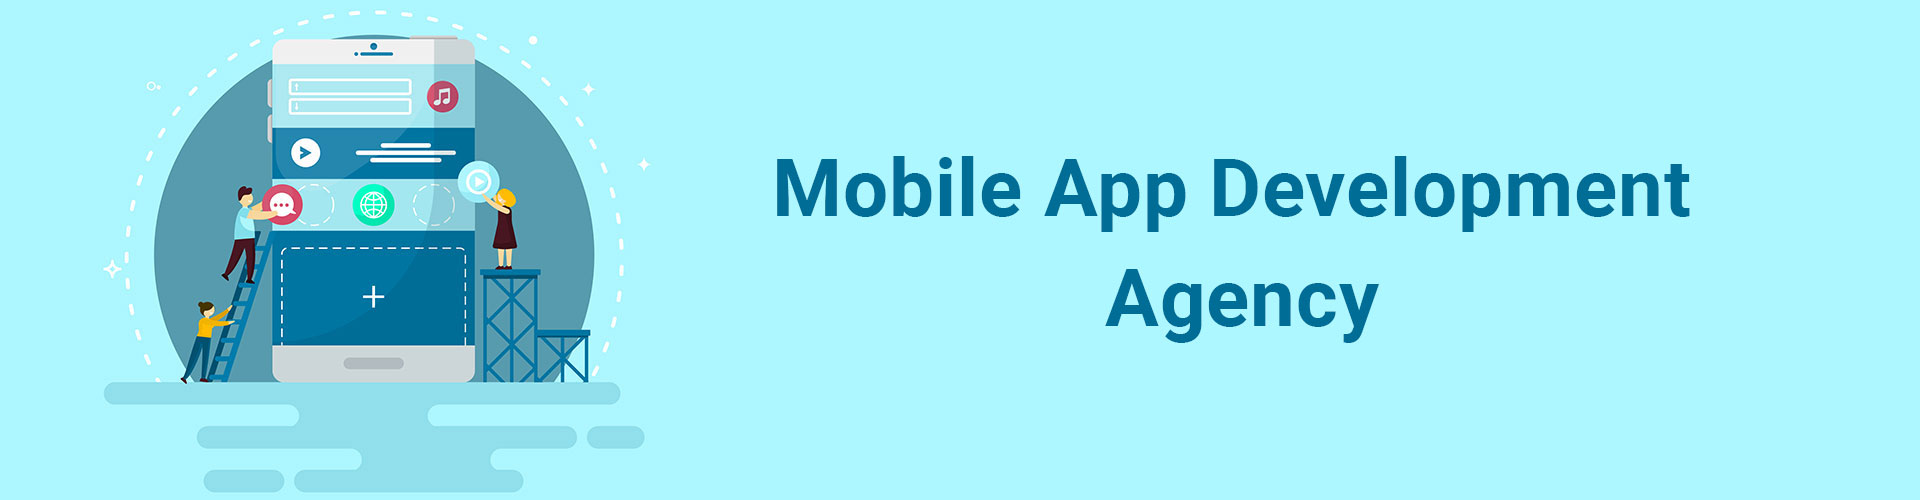 mobile app development agency